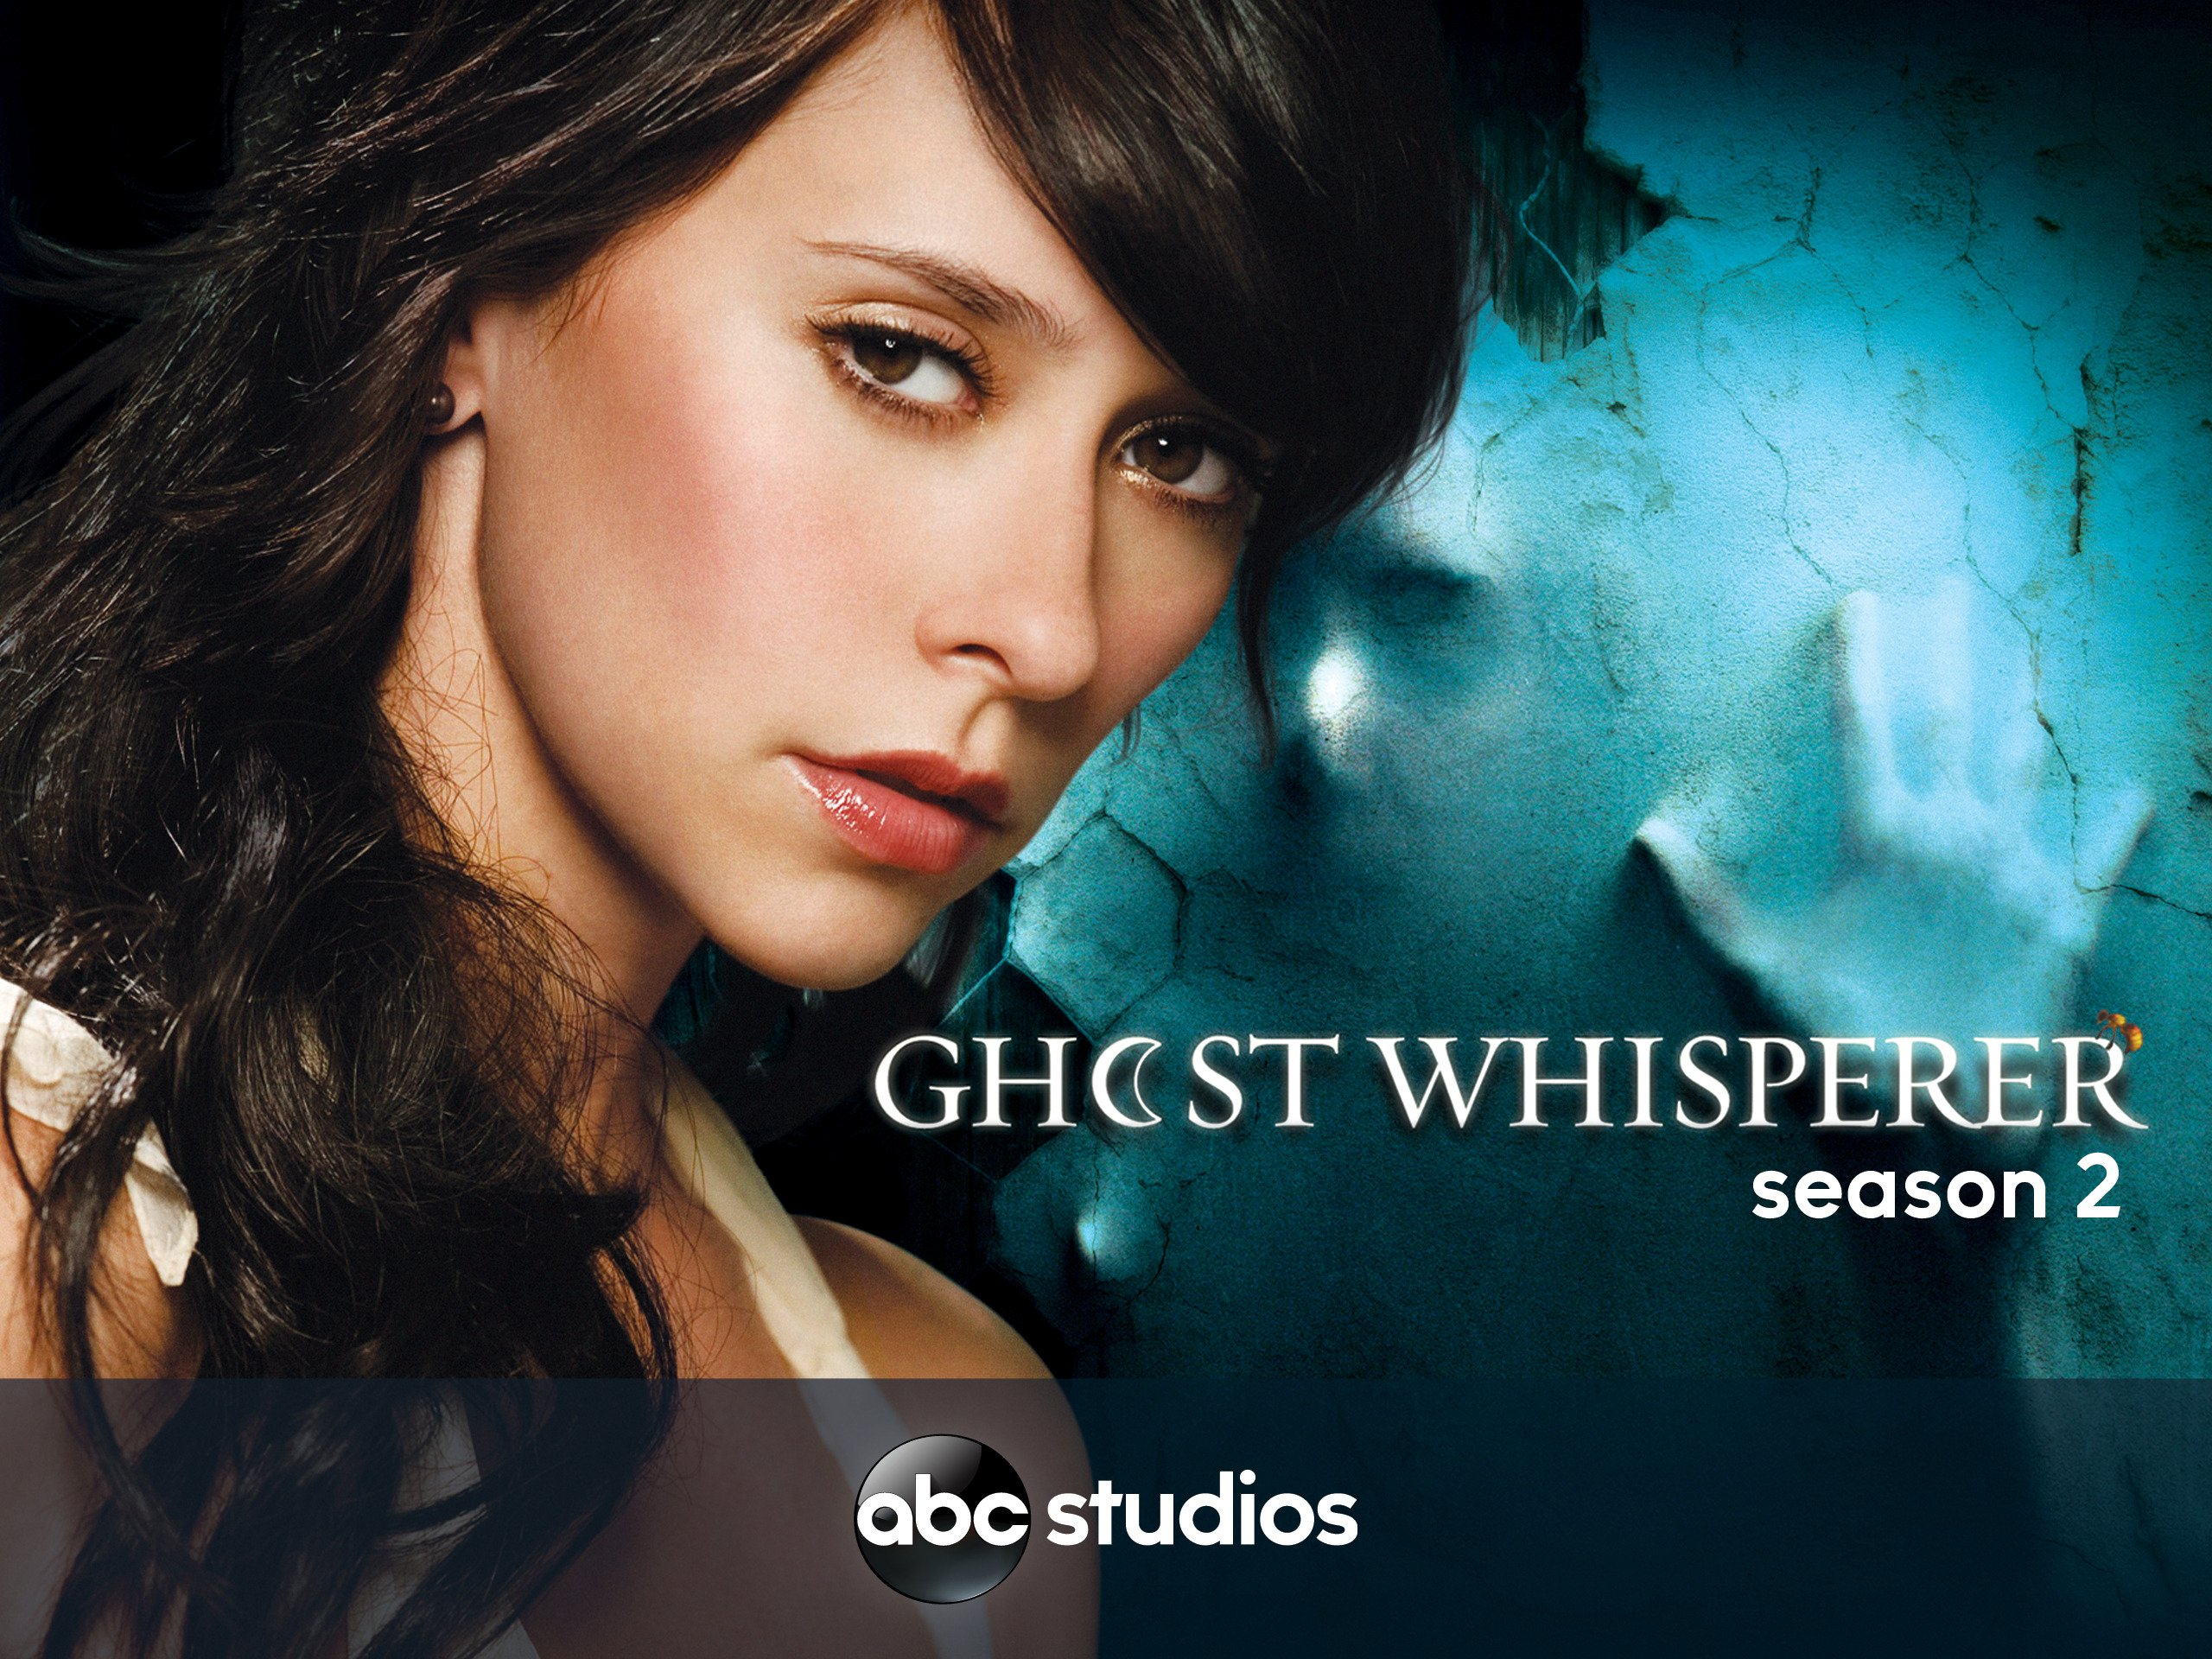 ghost whisperer season 2 episode 8